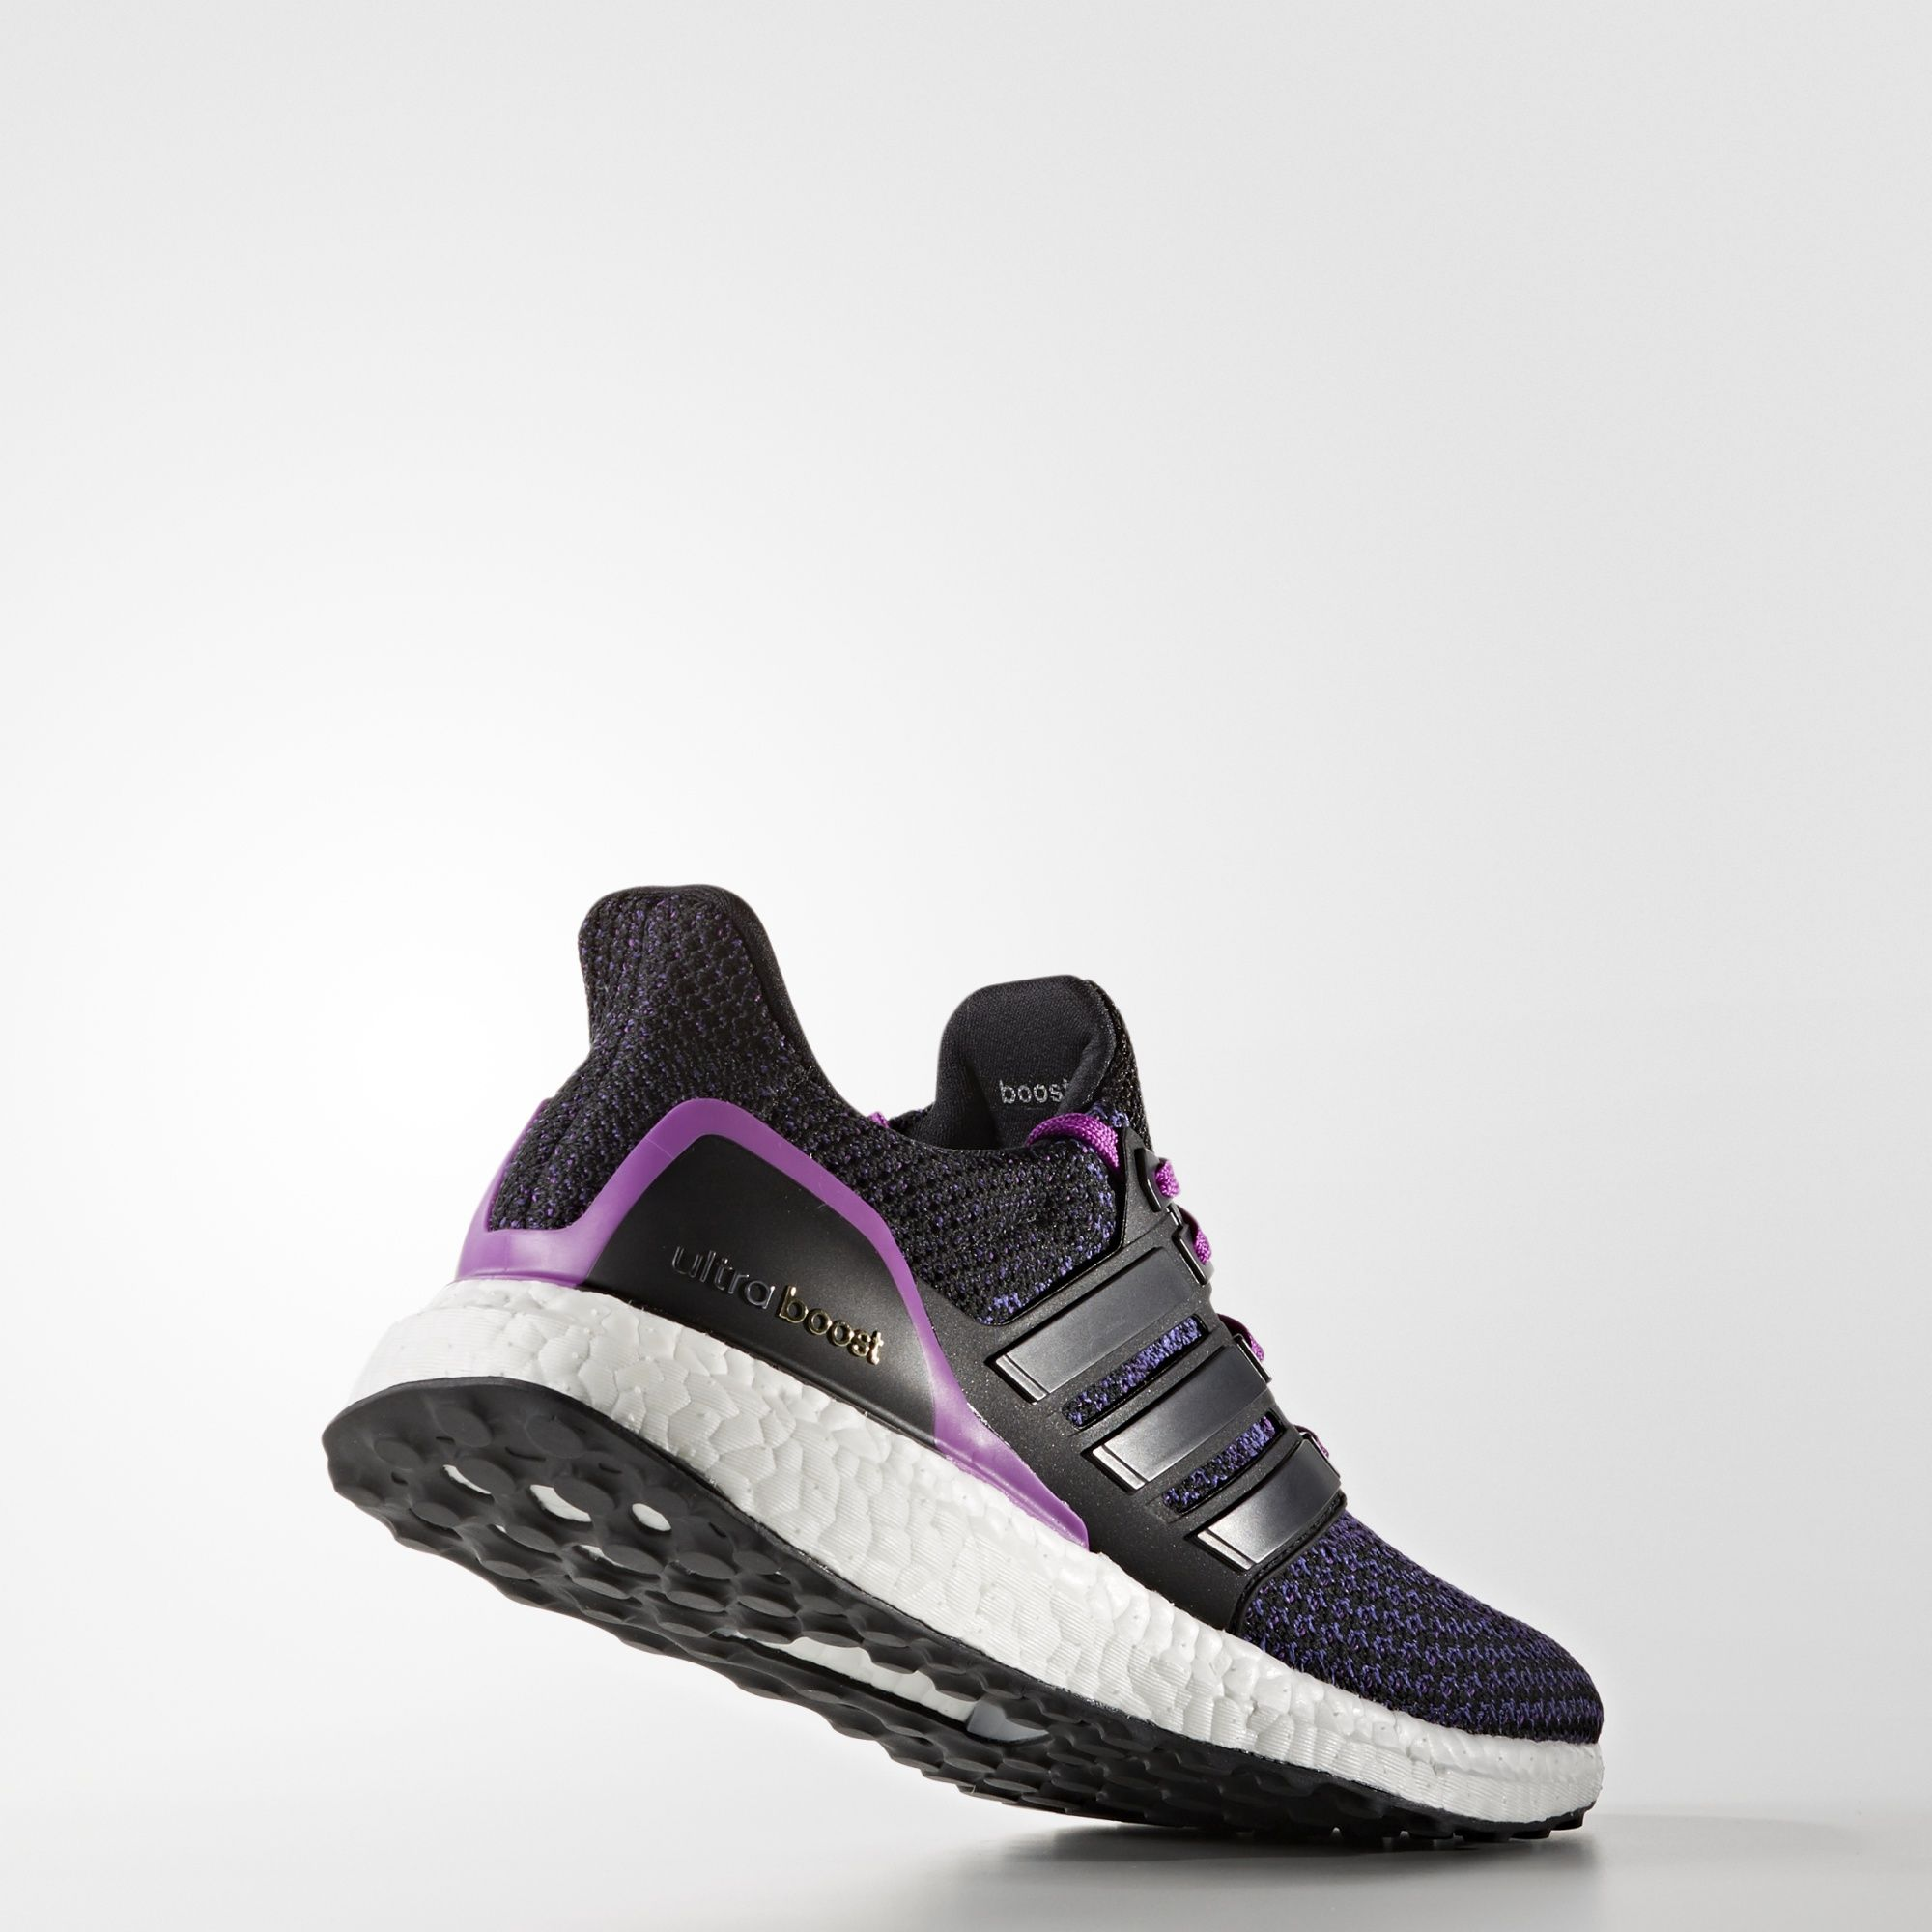 ... running shoe purple 81462 504bb france adidas ultra boost womens 79427  dde8e ... 050e27654